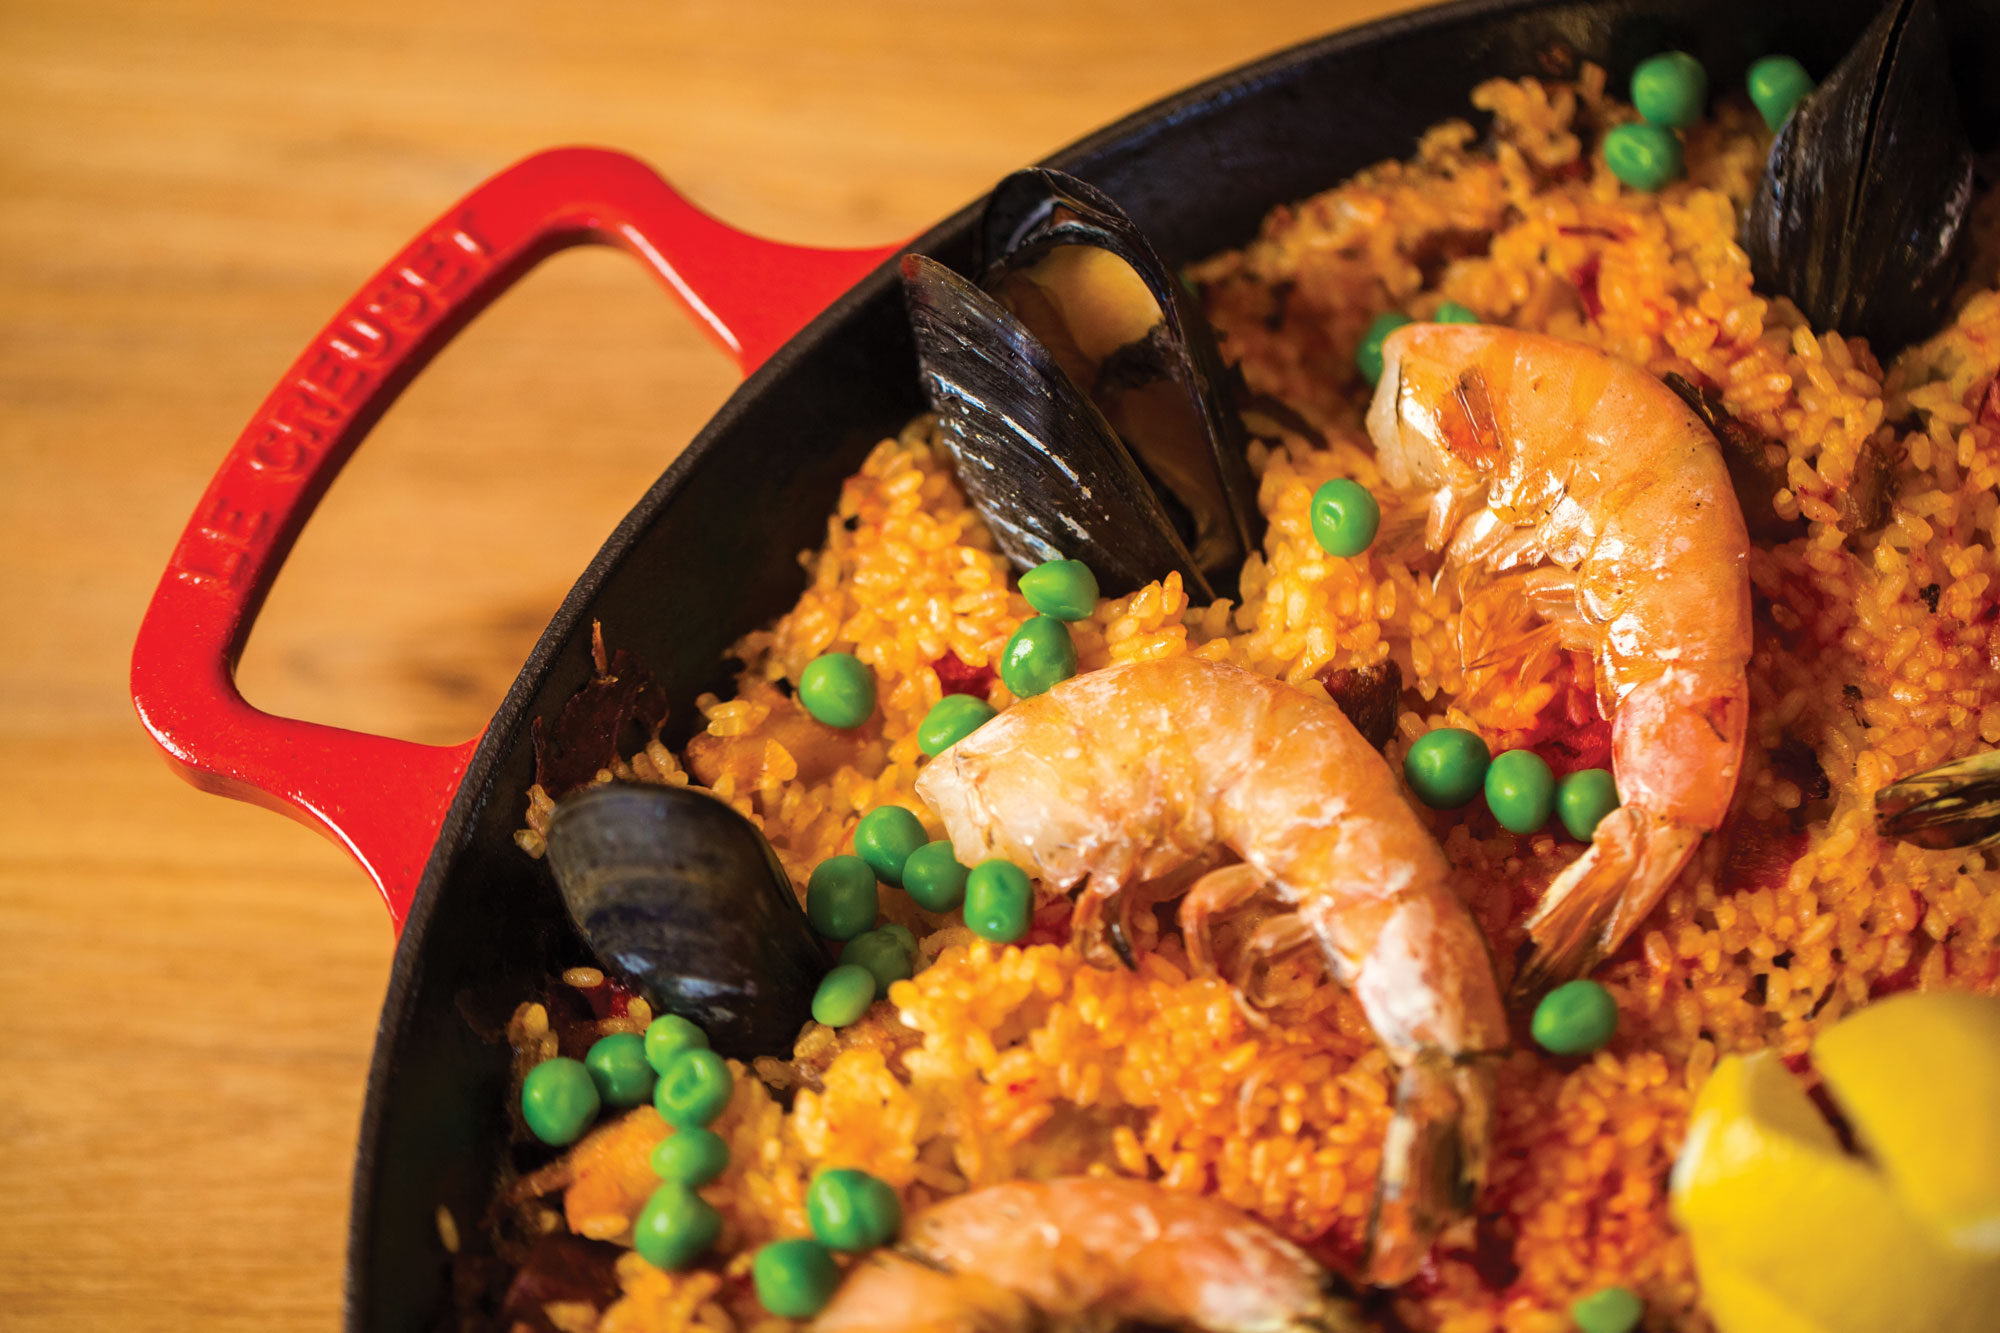 Le Creuset Cast Iron Paella Pan 13 25 Inch Cherry Red